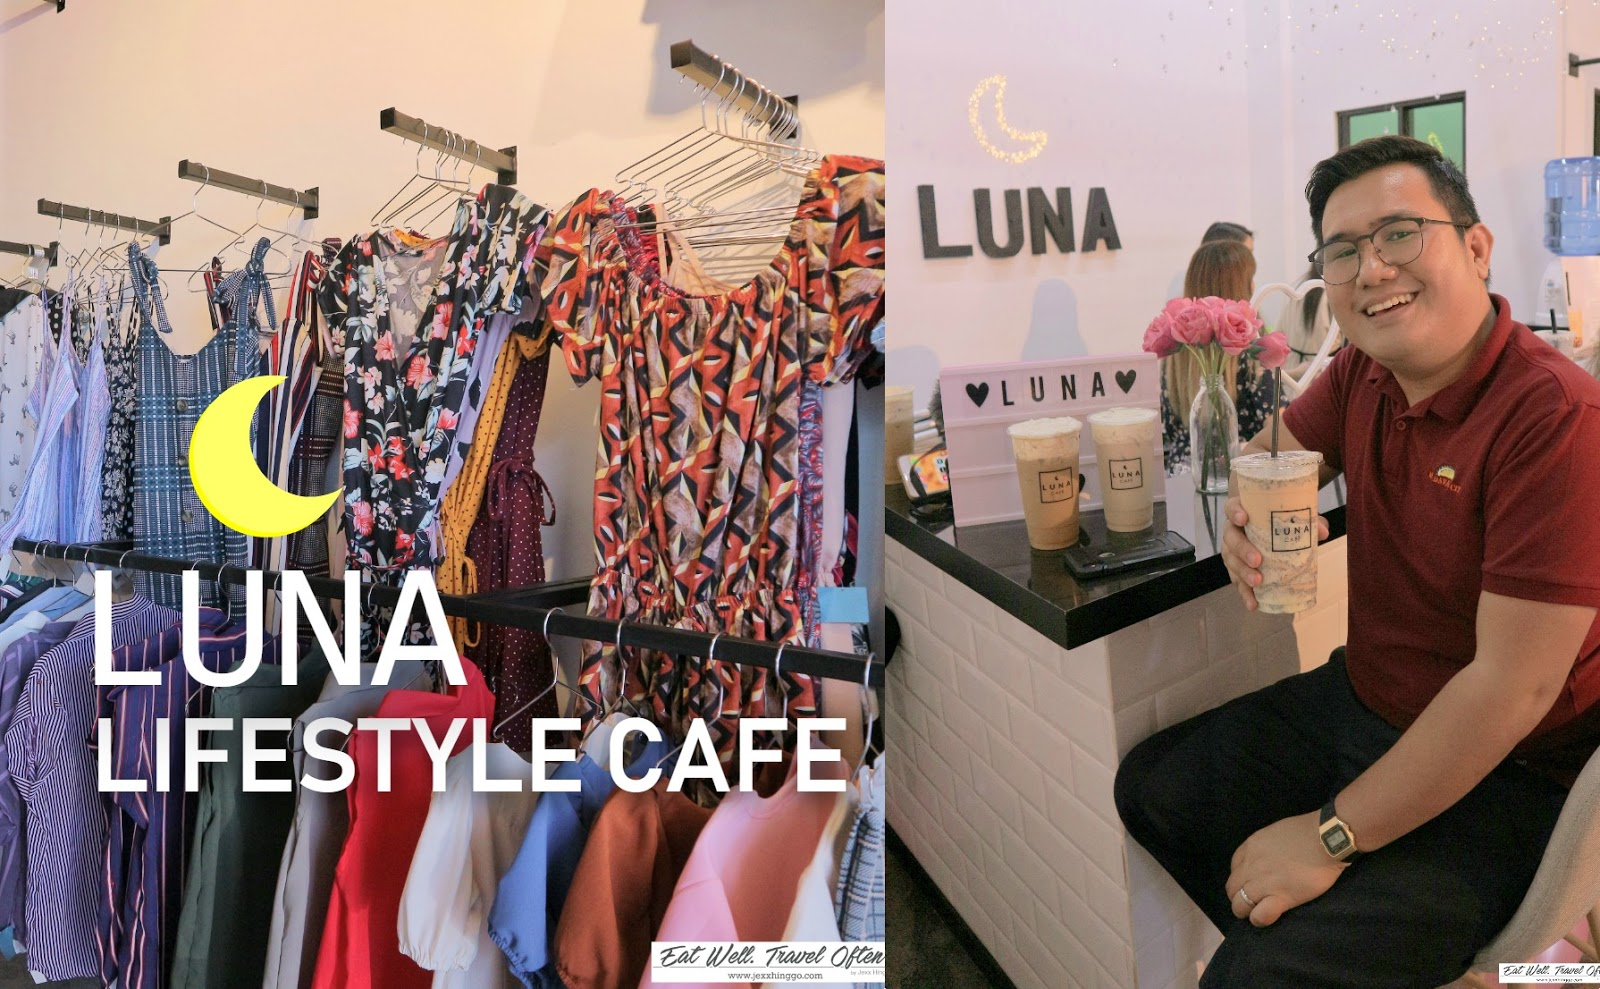 Luna Lifestyle Cafe - A unique concept store in Davao